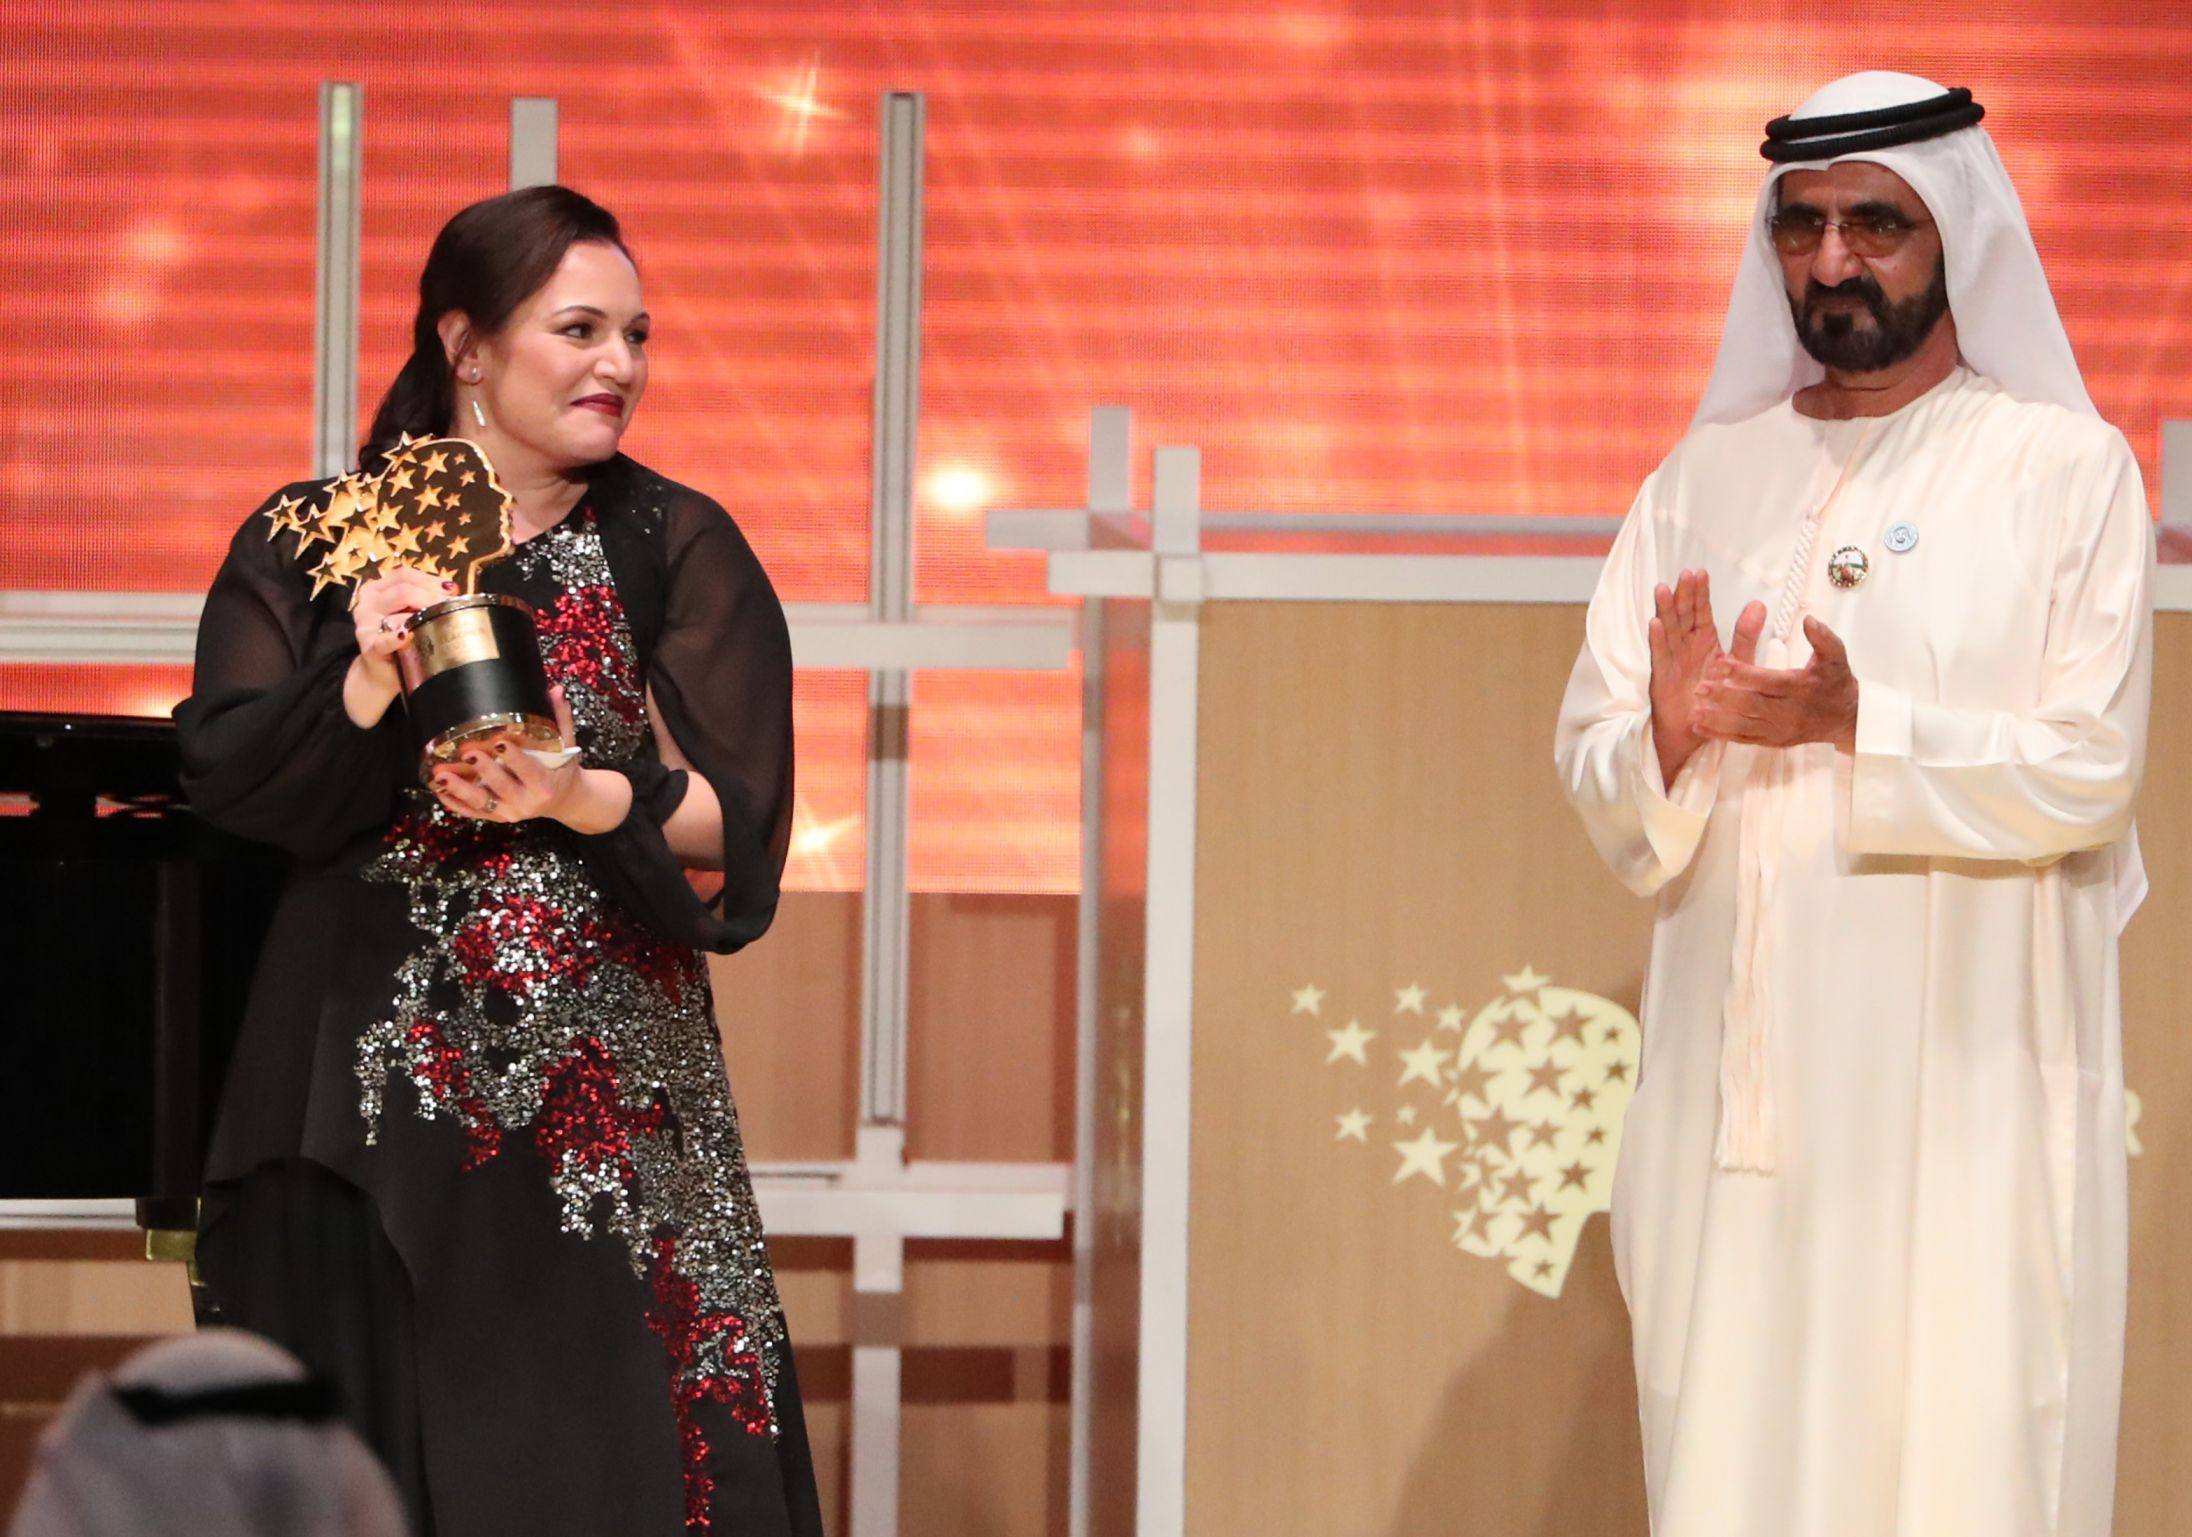 Andria Zafirakou (pictured with Sheikh Mohammed bin Rashid al-Maktoum, vice-president and prime minister of the UAE) won the Global Teacher Prize and $1million prize money in 2018 (Photo credit: KARIM SAHIB/AFP via Getty Images)